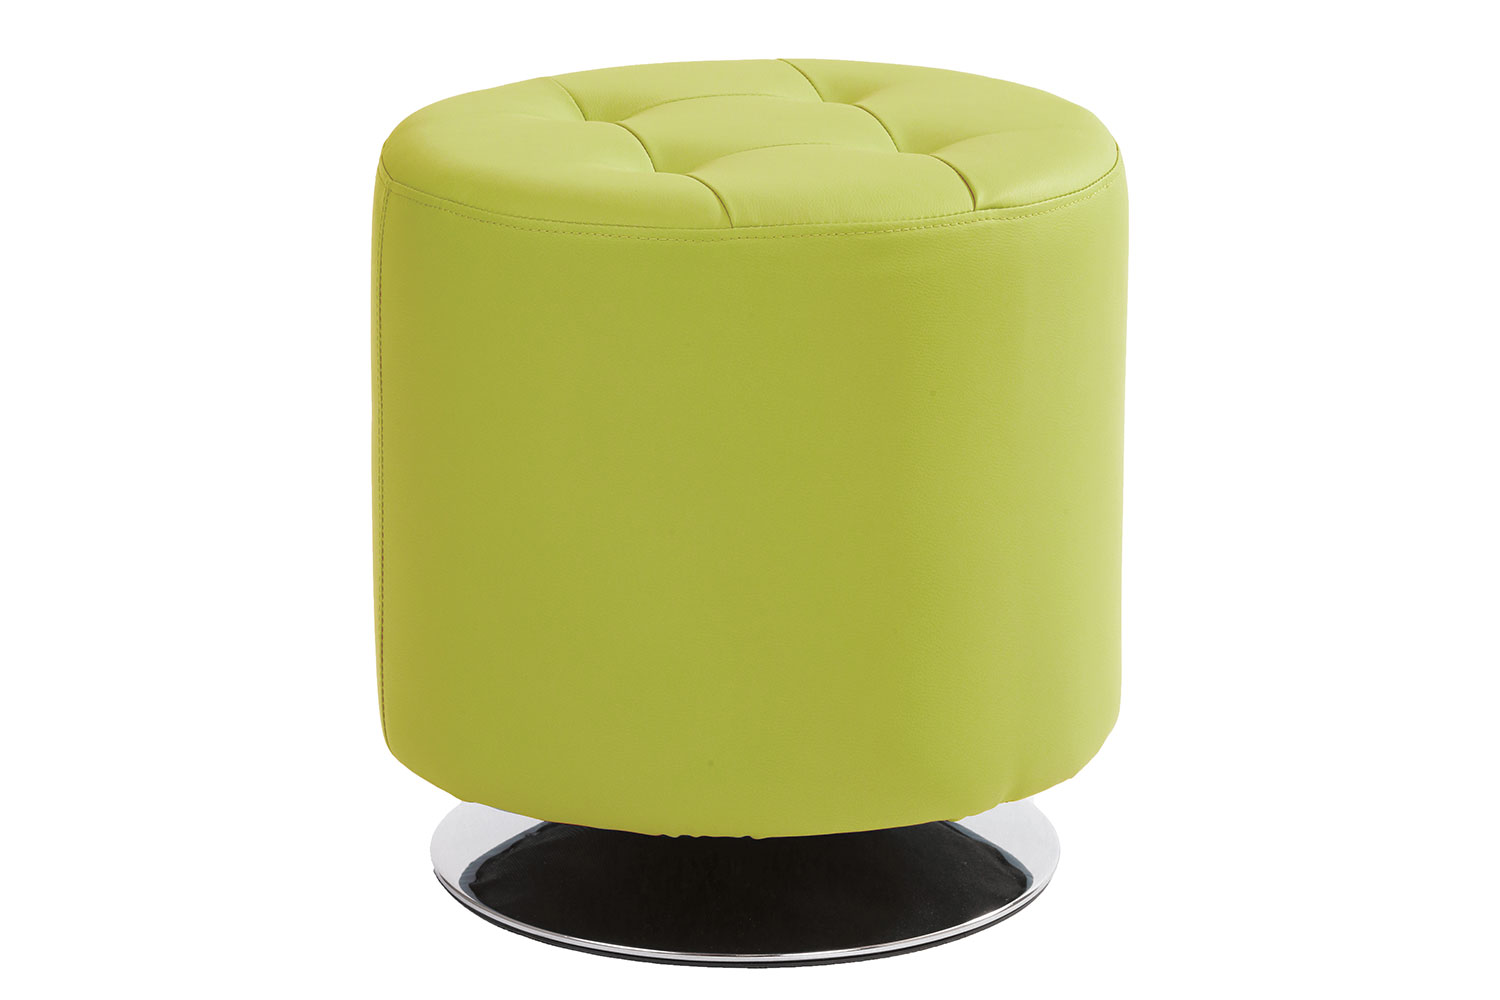 swivel chair harvey norman eames bucket lyon ottoman by paulack furniture